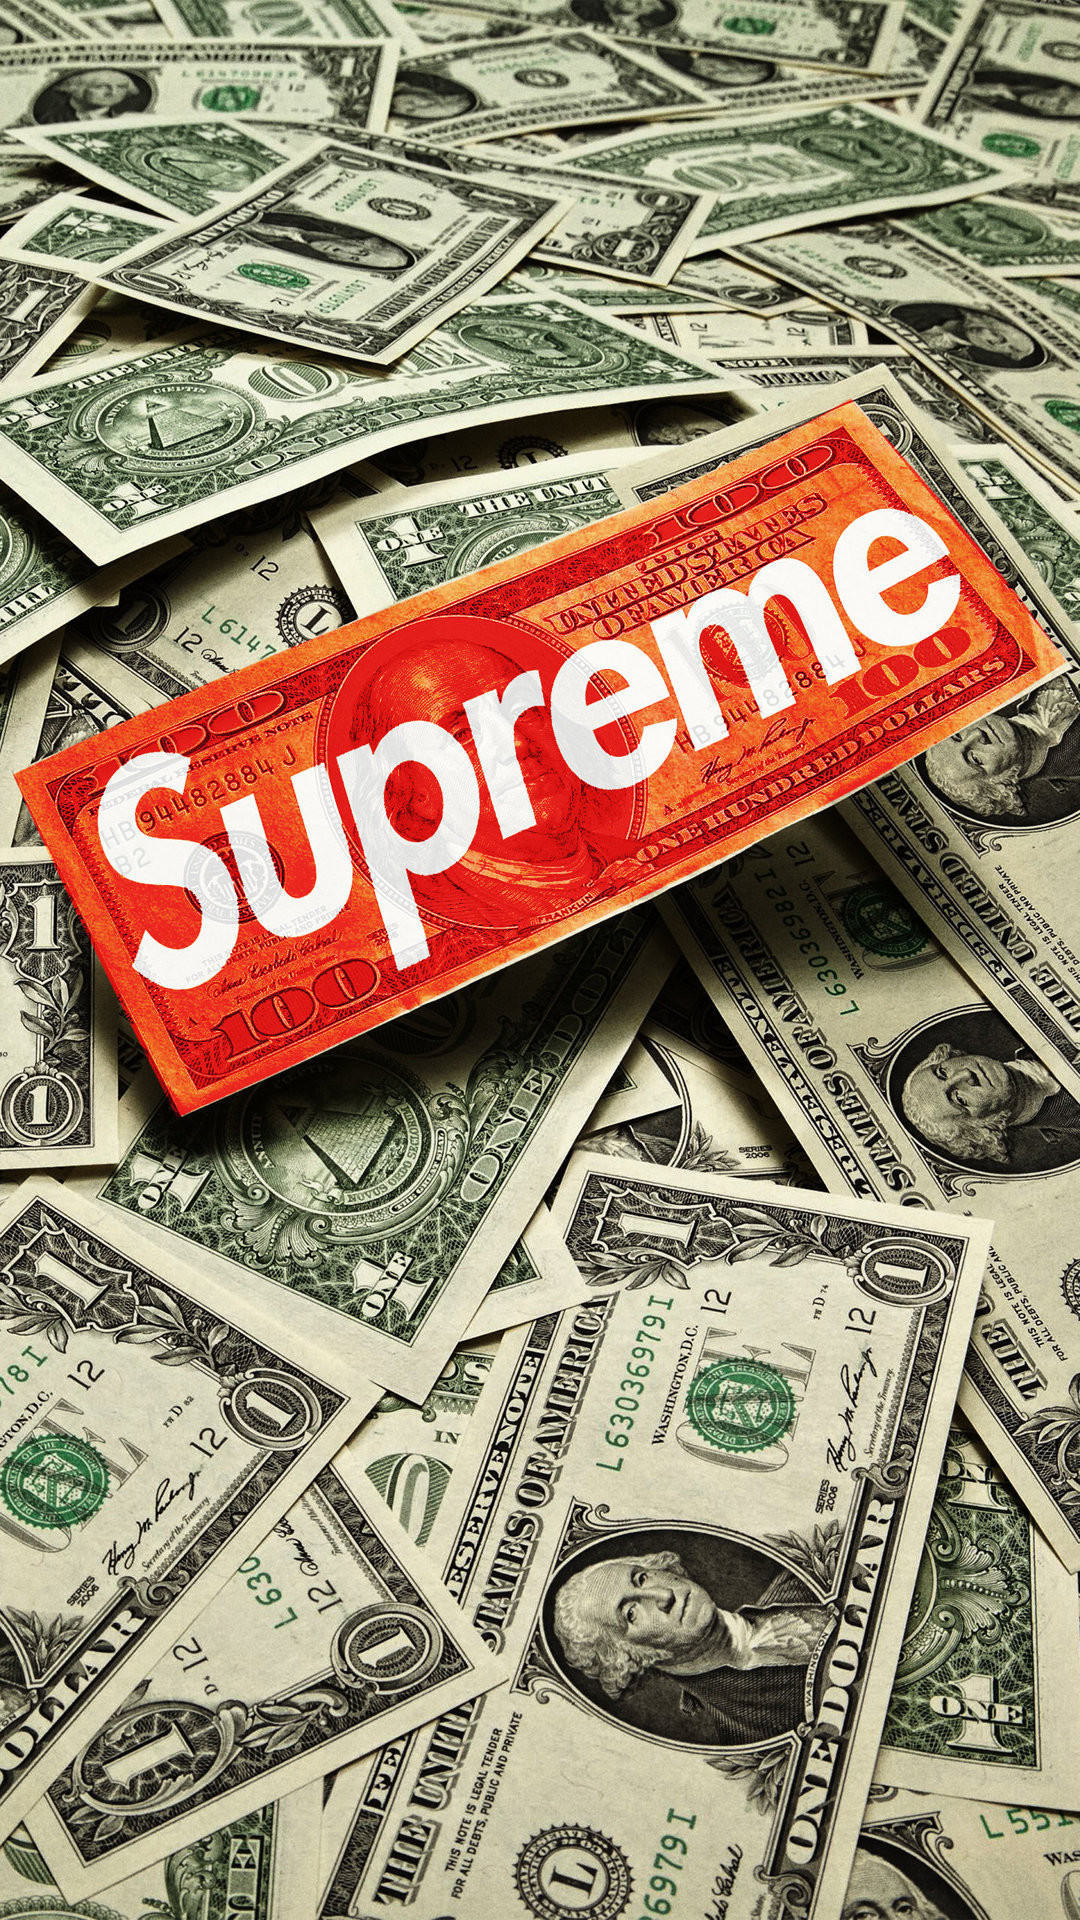 1080x1920 Download Supreme Cash Download Wallpaper. iPhone 6 (750x1134) · iPhone 6+  () ...